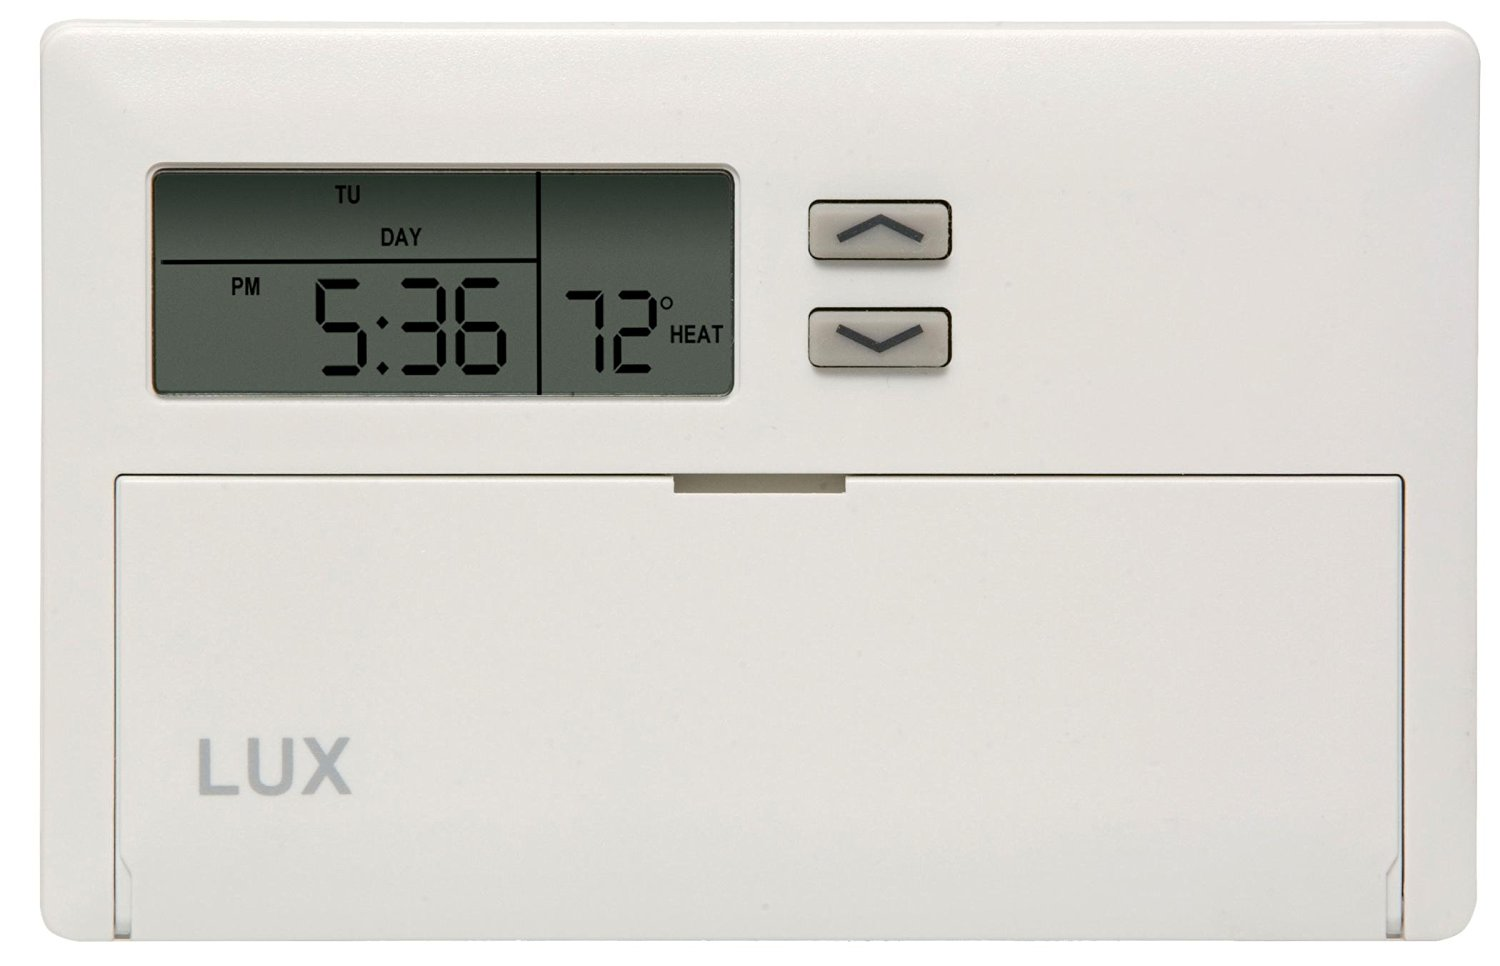 Cheap Lux 1500 Thermostat Manual, find Lux 1500 Thermostat Manual